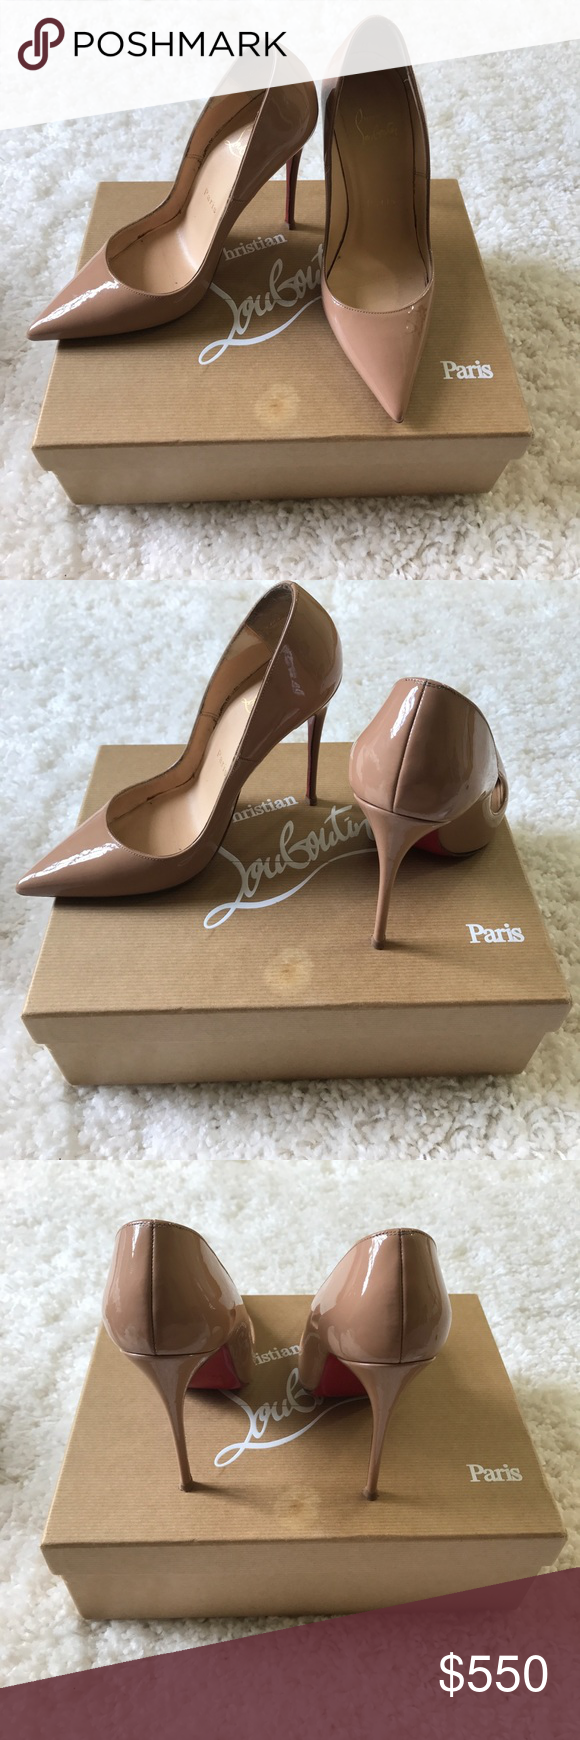 "Authentic Christian Louboutin So Kate nude pumps Authentic So Kate CL pumps. Bottom sole has been resoled. Heel is 4.5"" have been worn multiple times. Does have some minor scuff on side of shoes. Still in very good condition. Comes with box and dust bag. Christian Louboutin Shoes Heels"